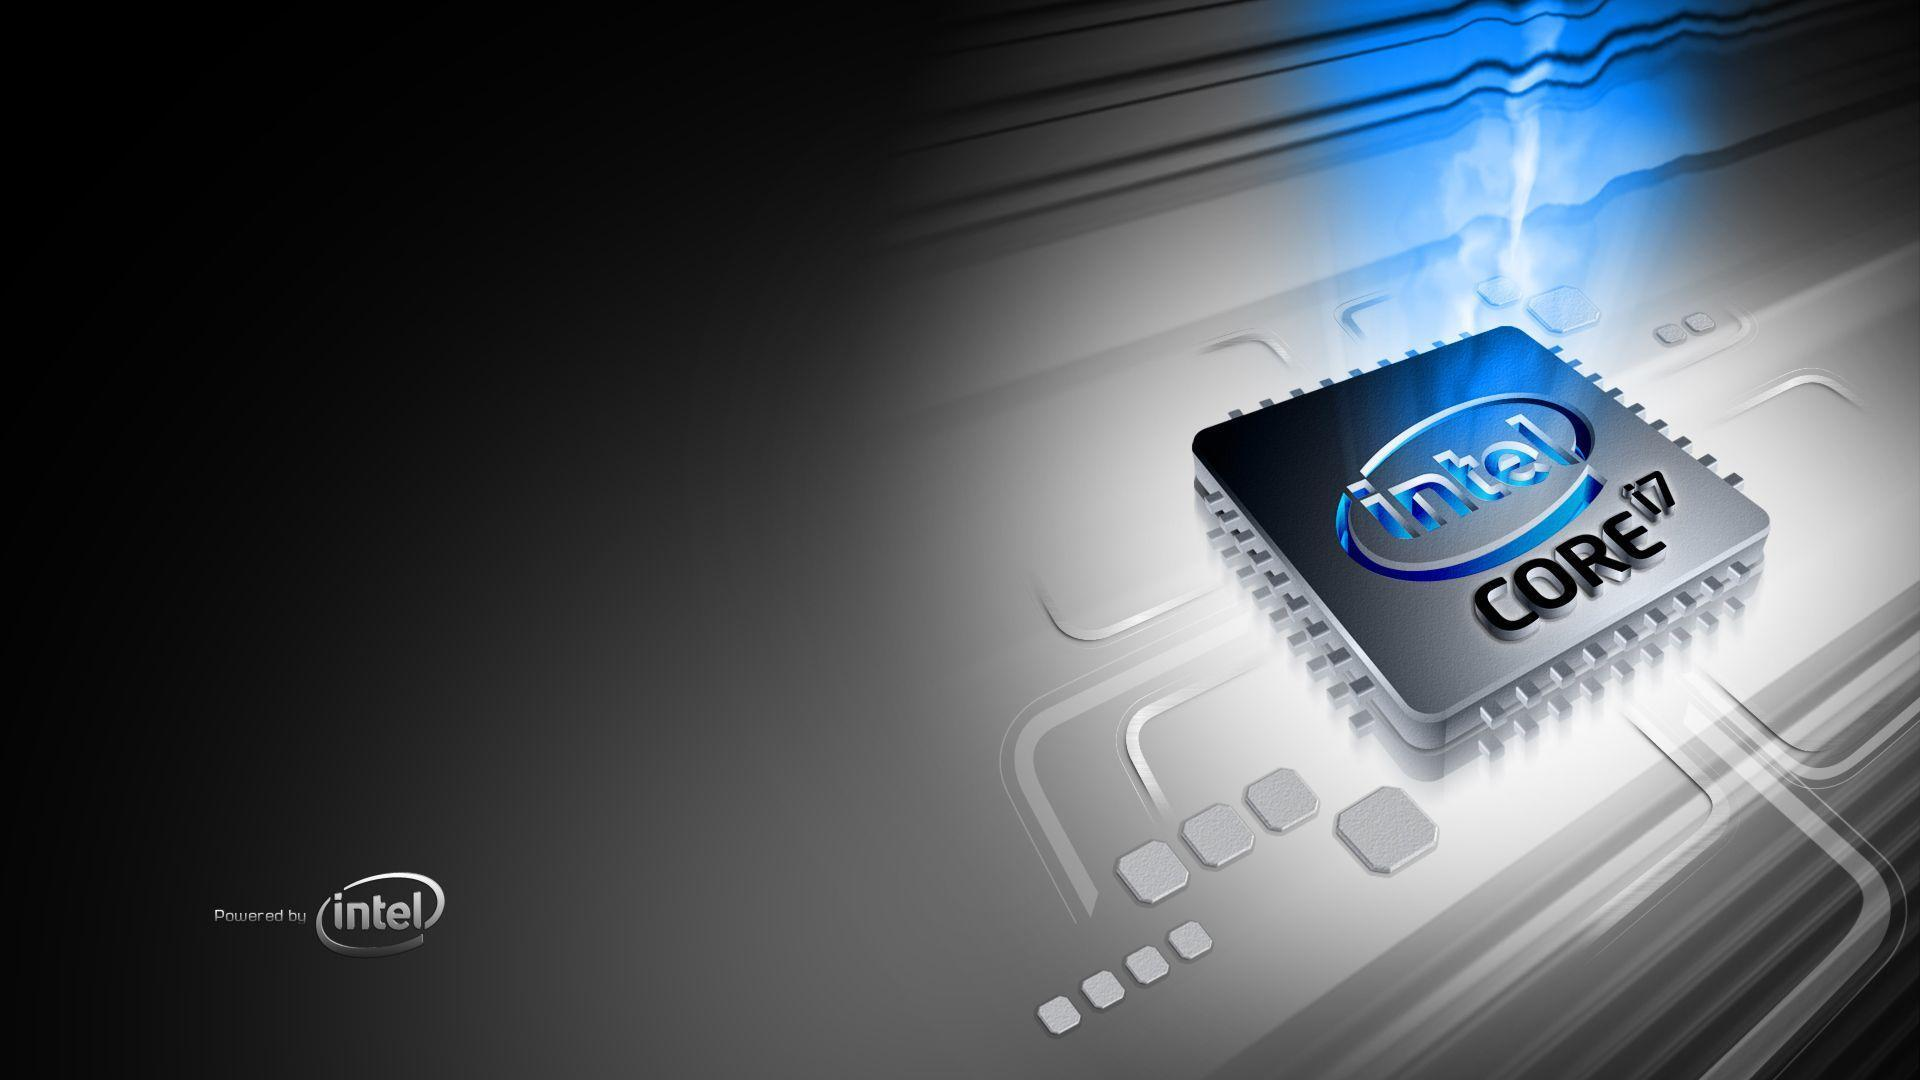 Intel Motherboard Wallpaper 45411 1920x1080 px ~ HDWallSource.com